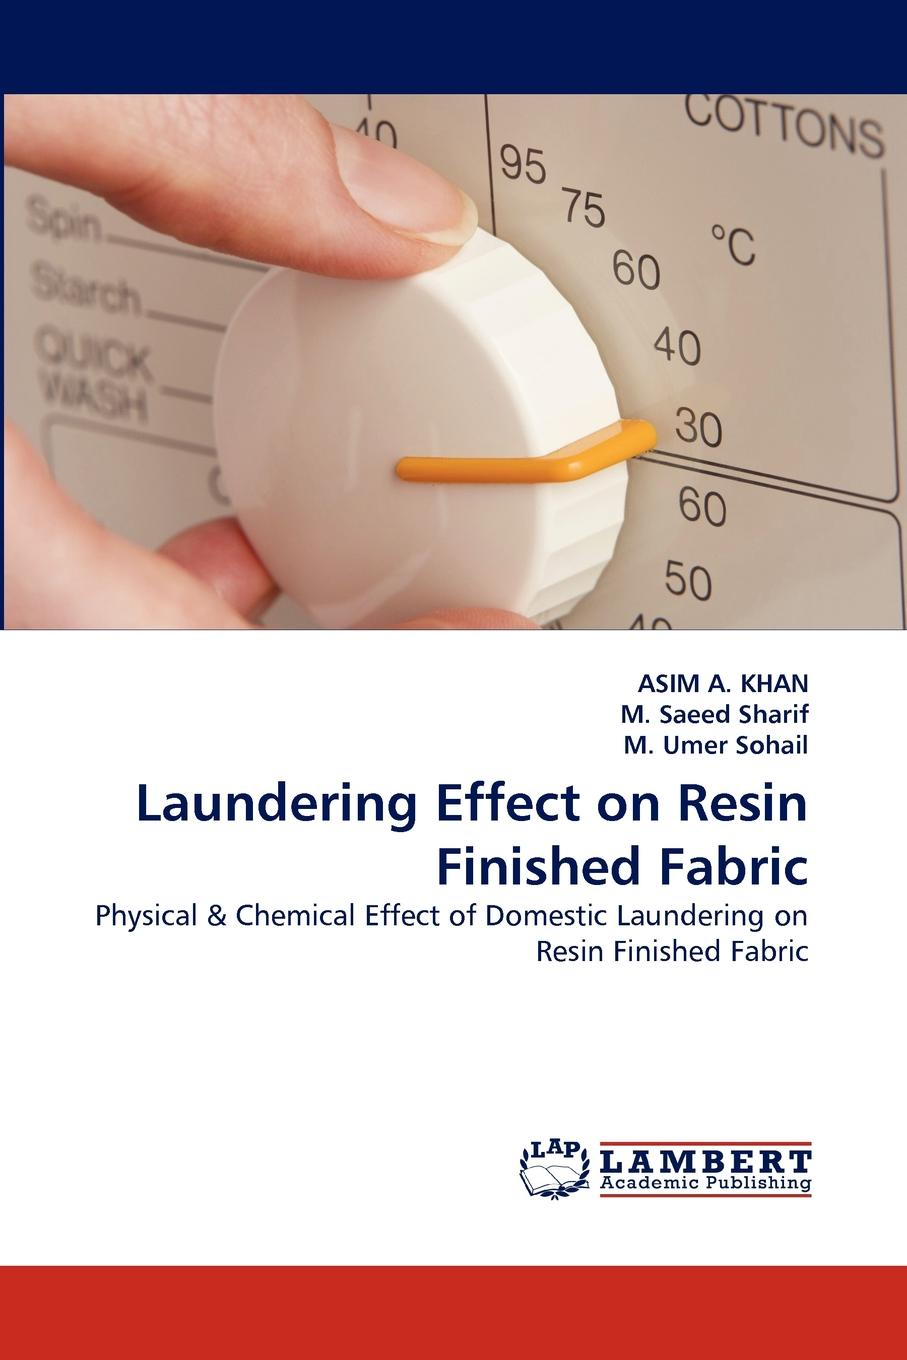 Asim A. Khan, M. Saeed Sharif, M. Umer Sohail Laundering Effect on Resin Finished Fabric chip poncy trade based money laundering the next frontier in international money laundering enforcement